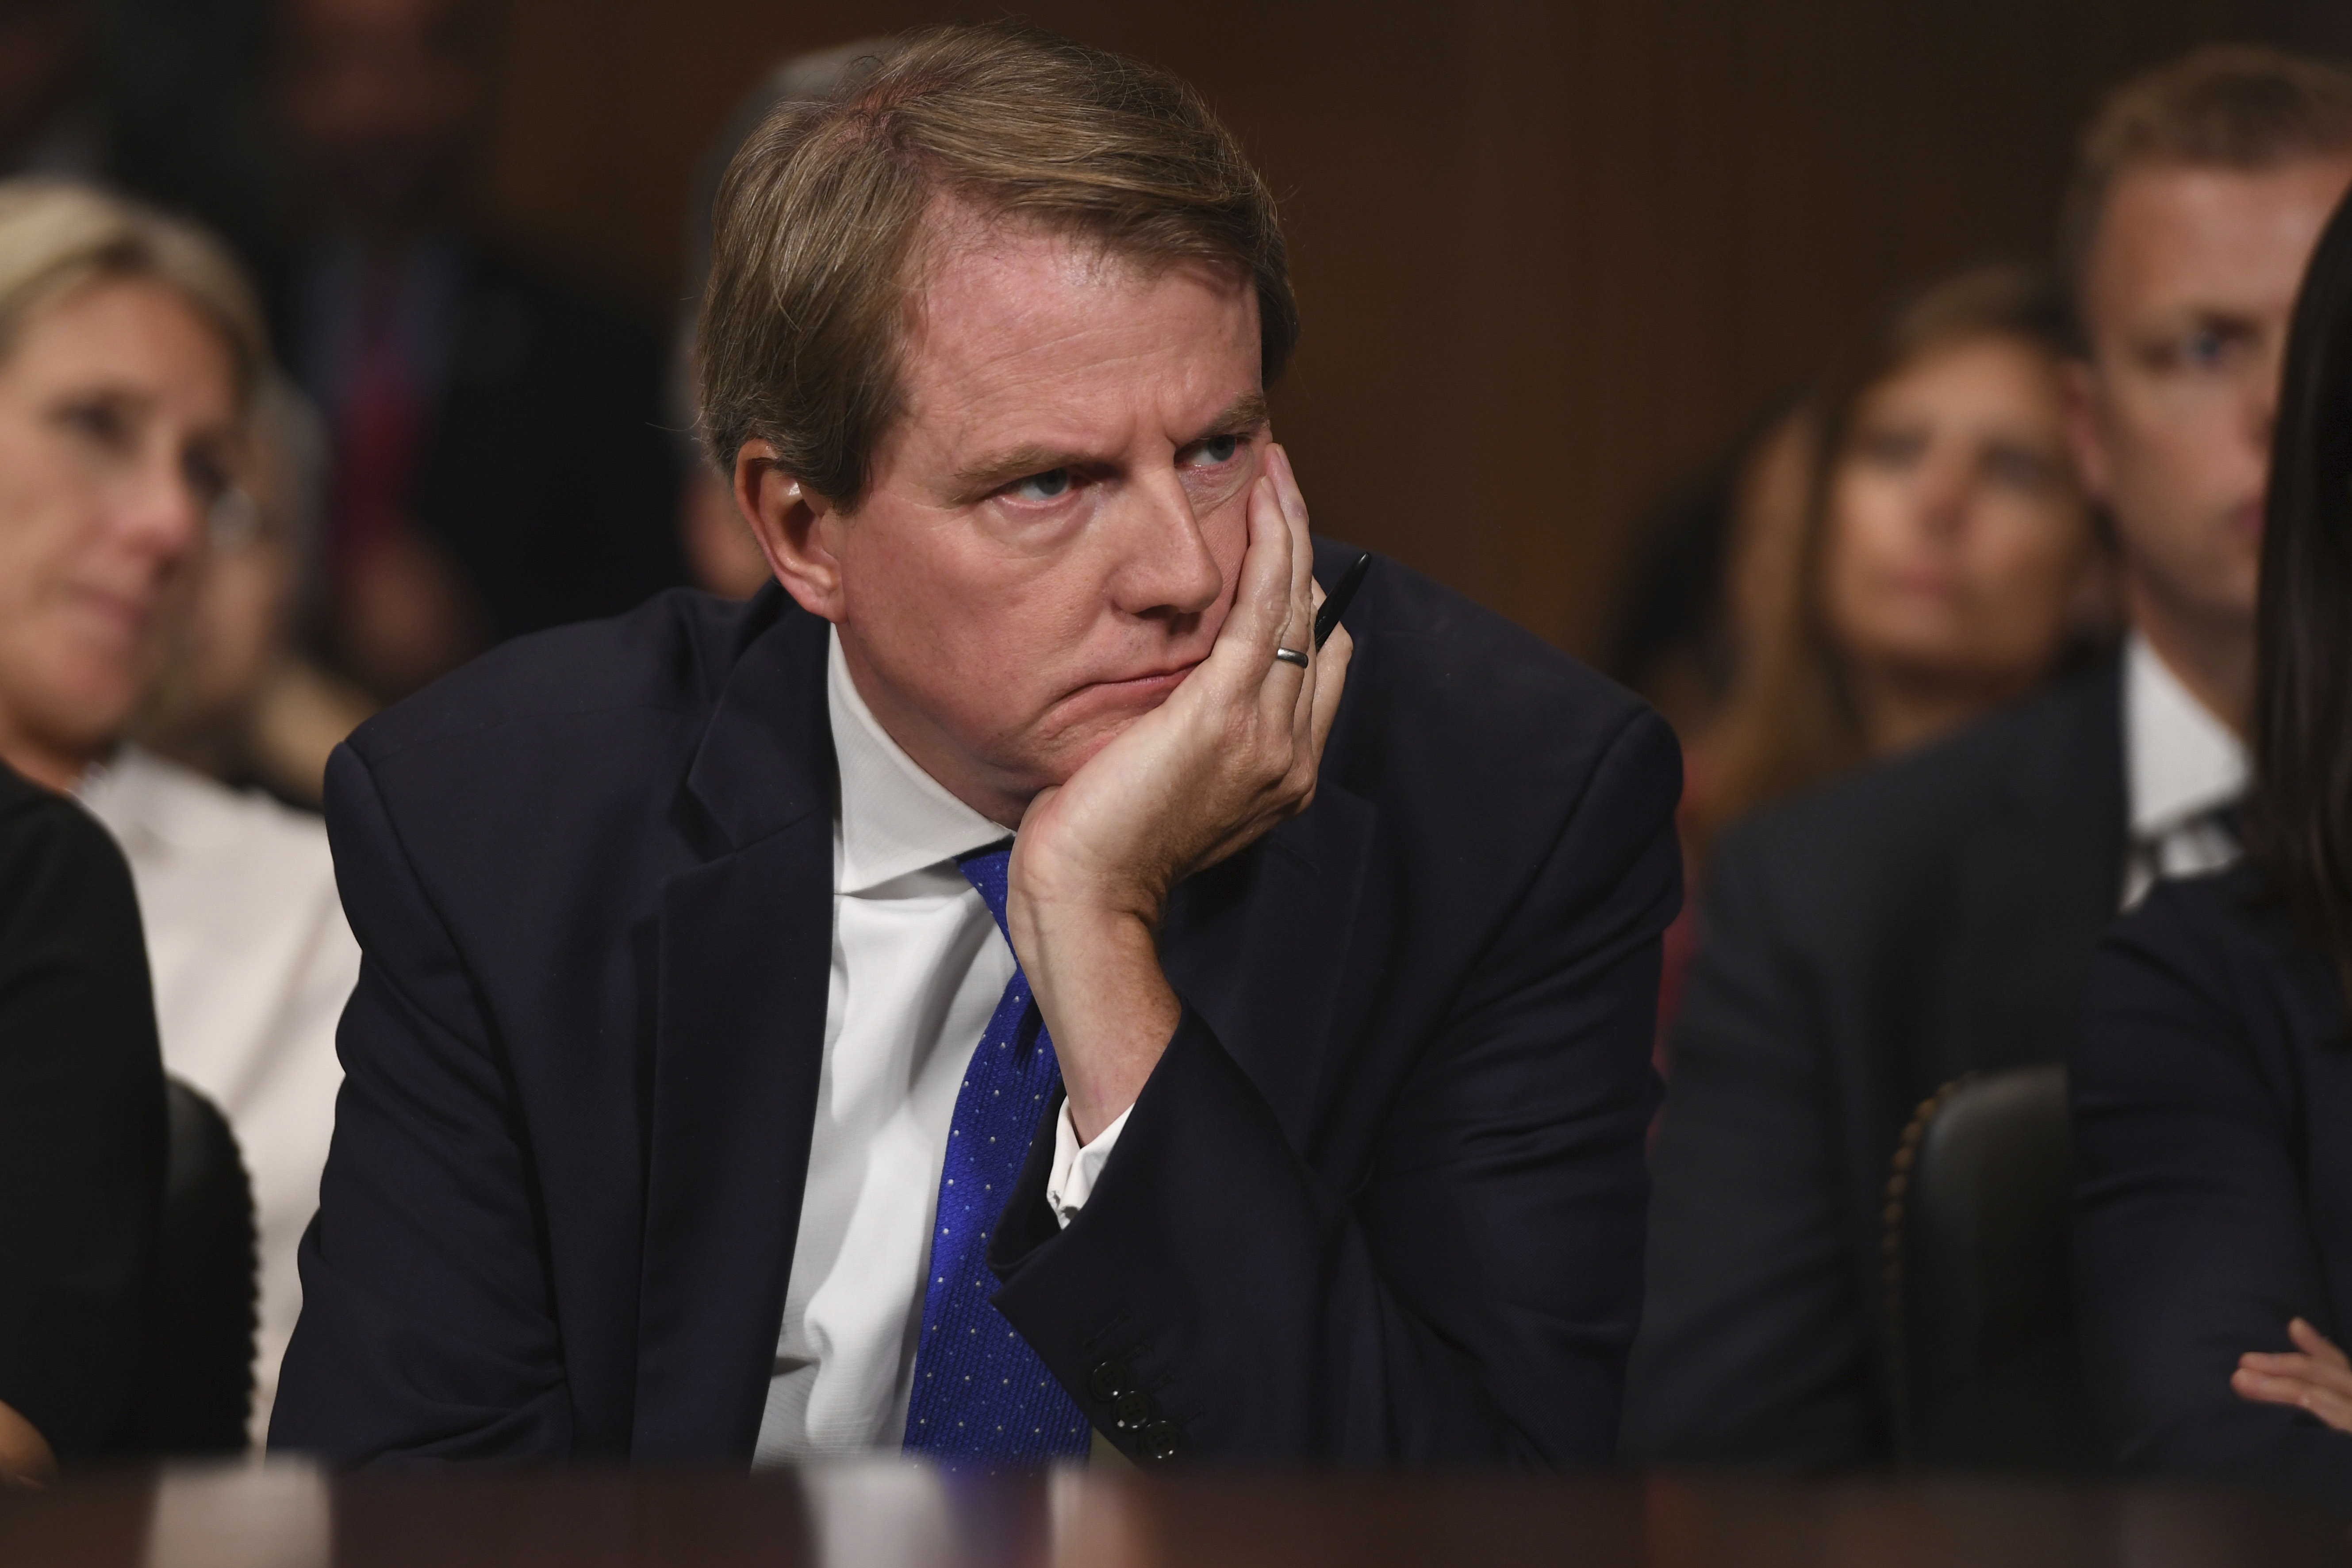 Former White House counsel McGahn chose to resign rather than fire Mueller